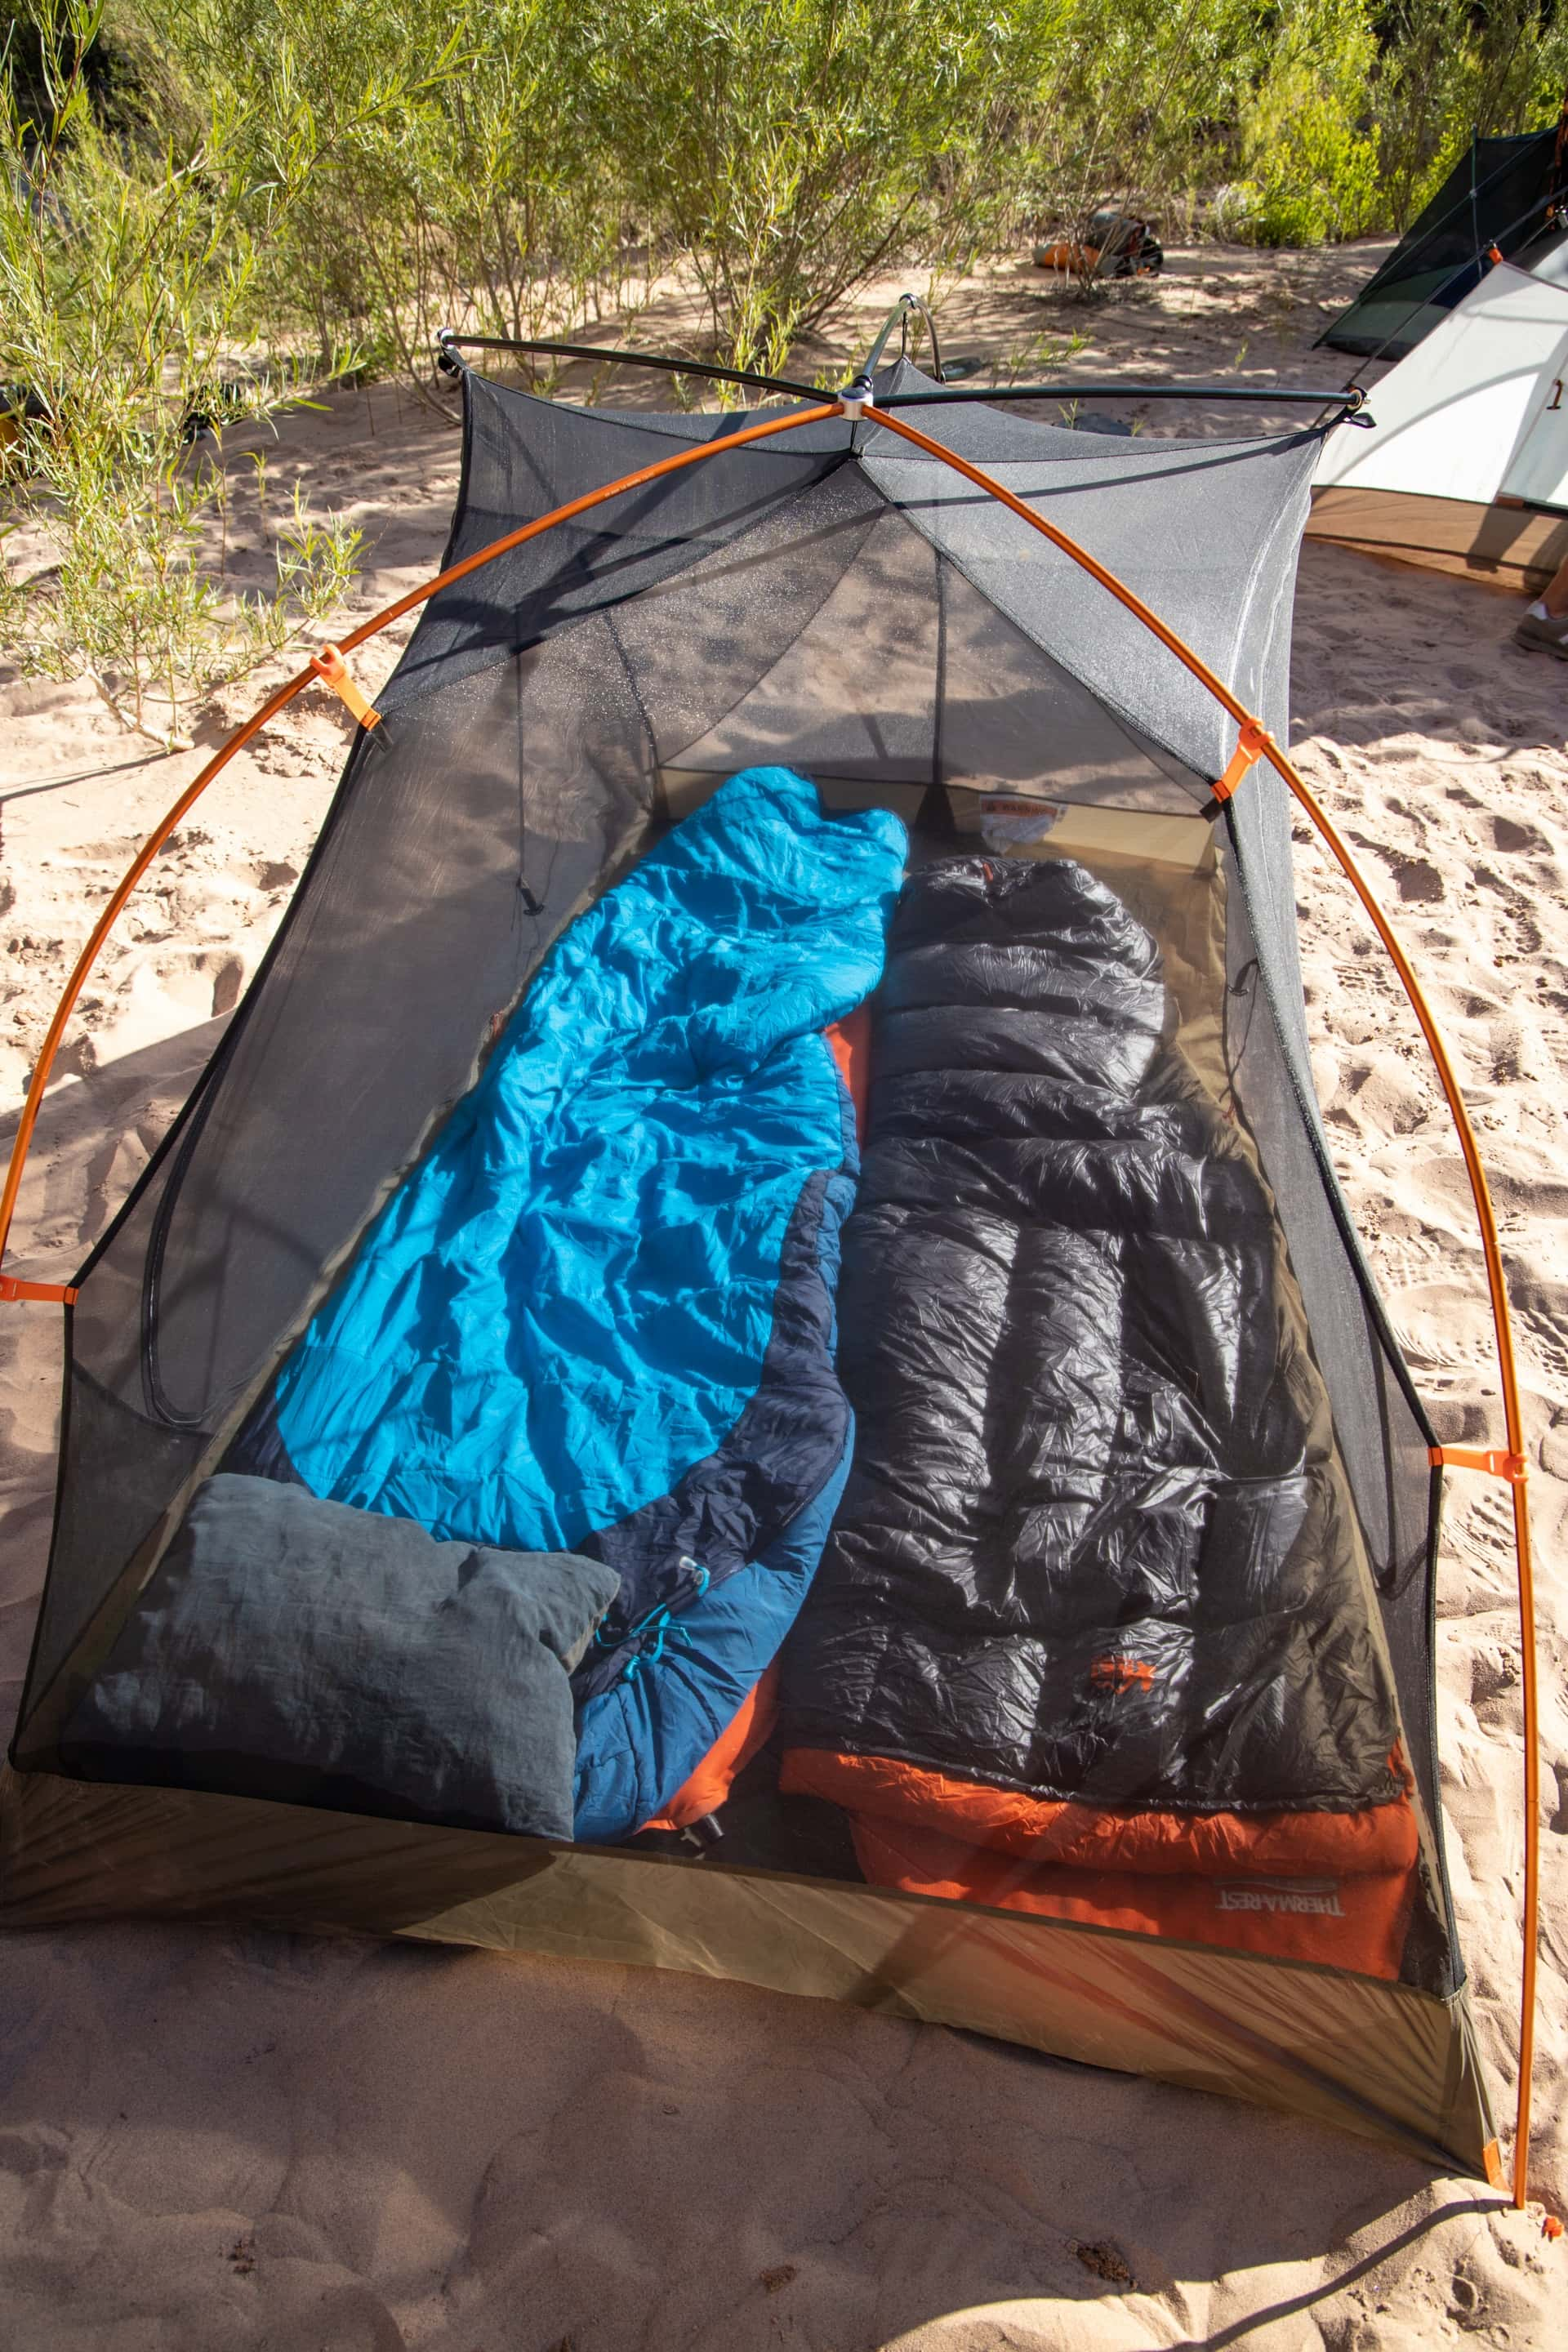 Get recommendations for the best tents for backpacking and learn what key features to consider when choosing a new lightweight tent.